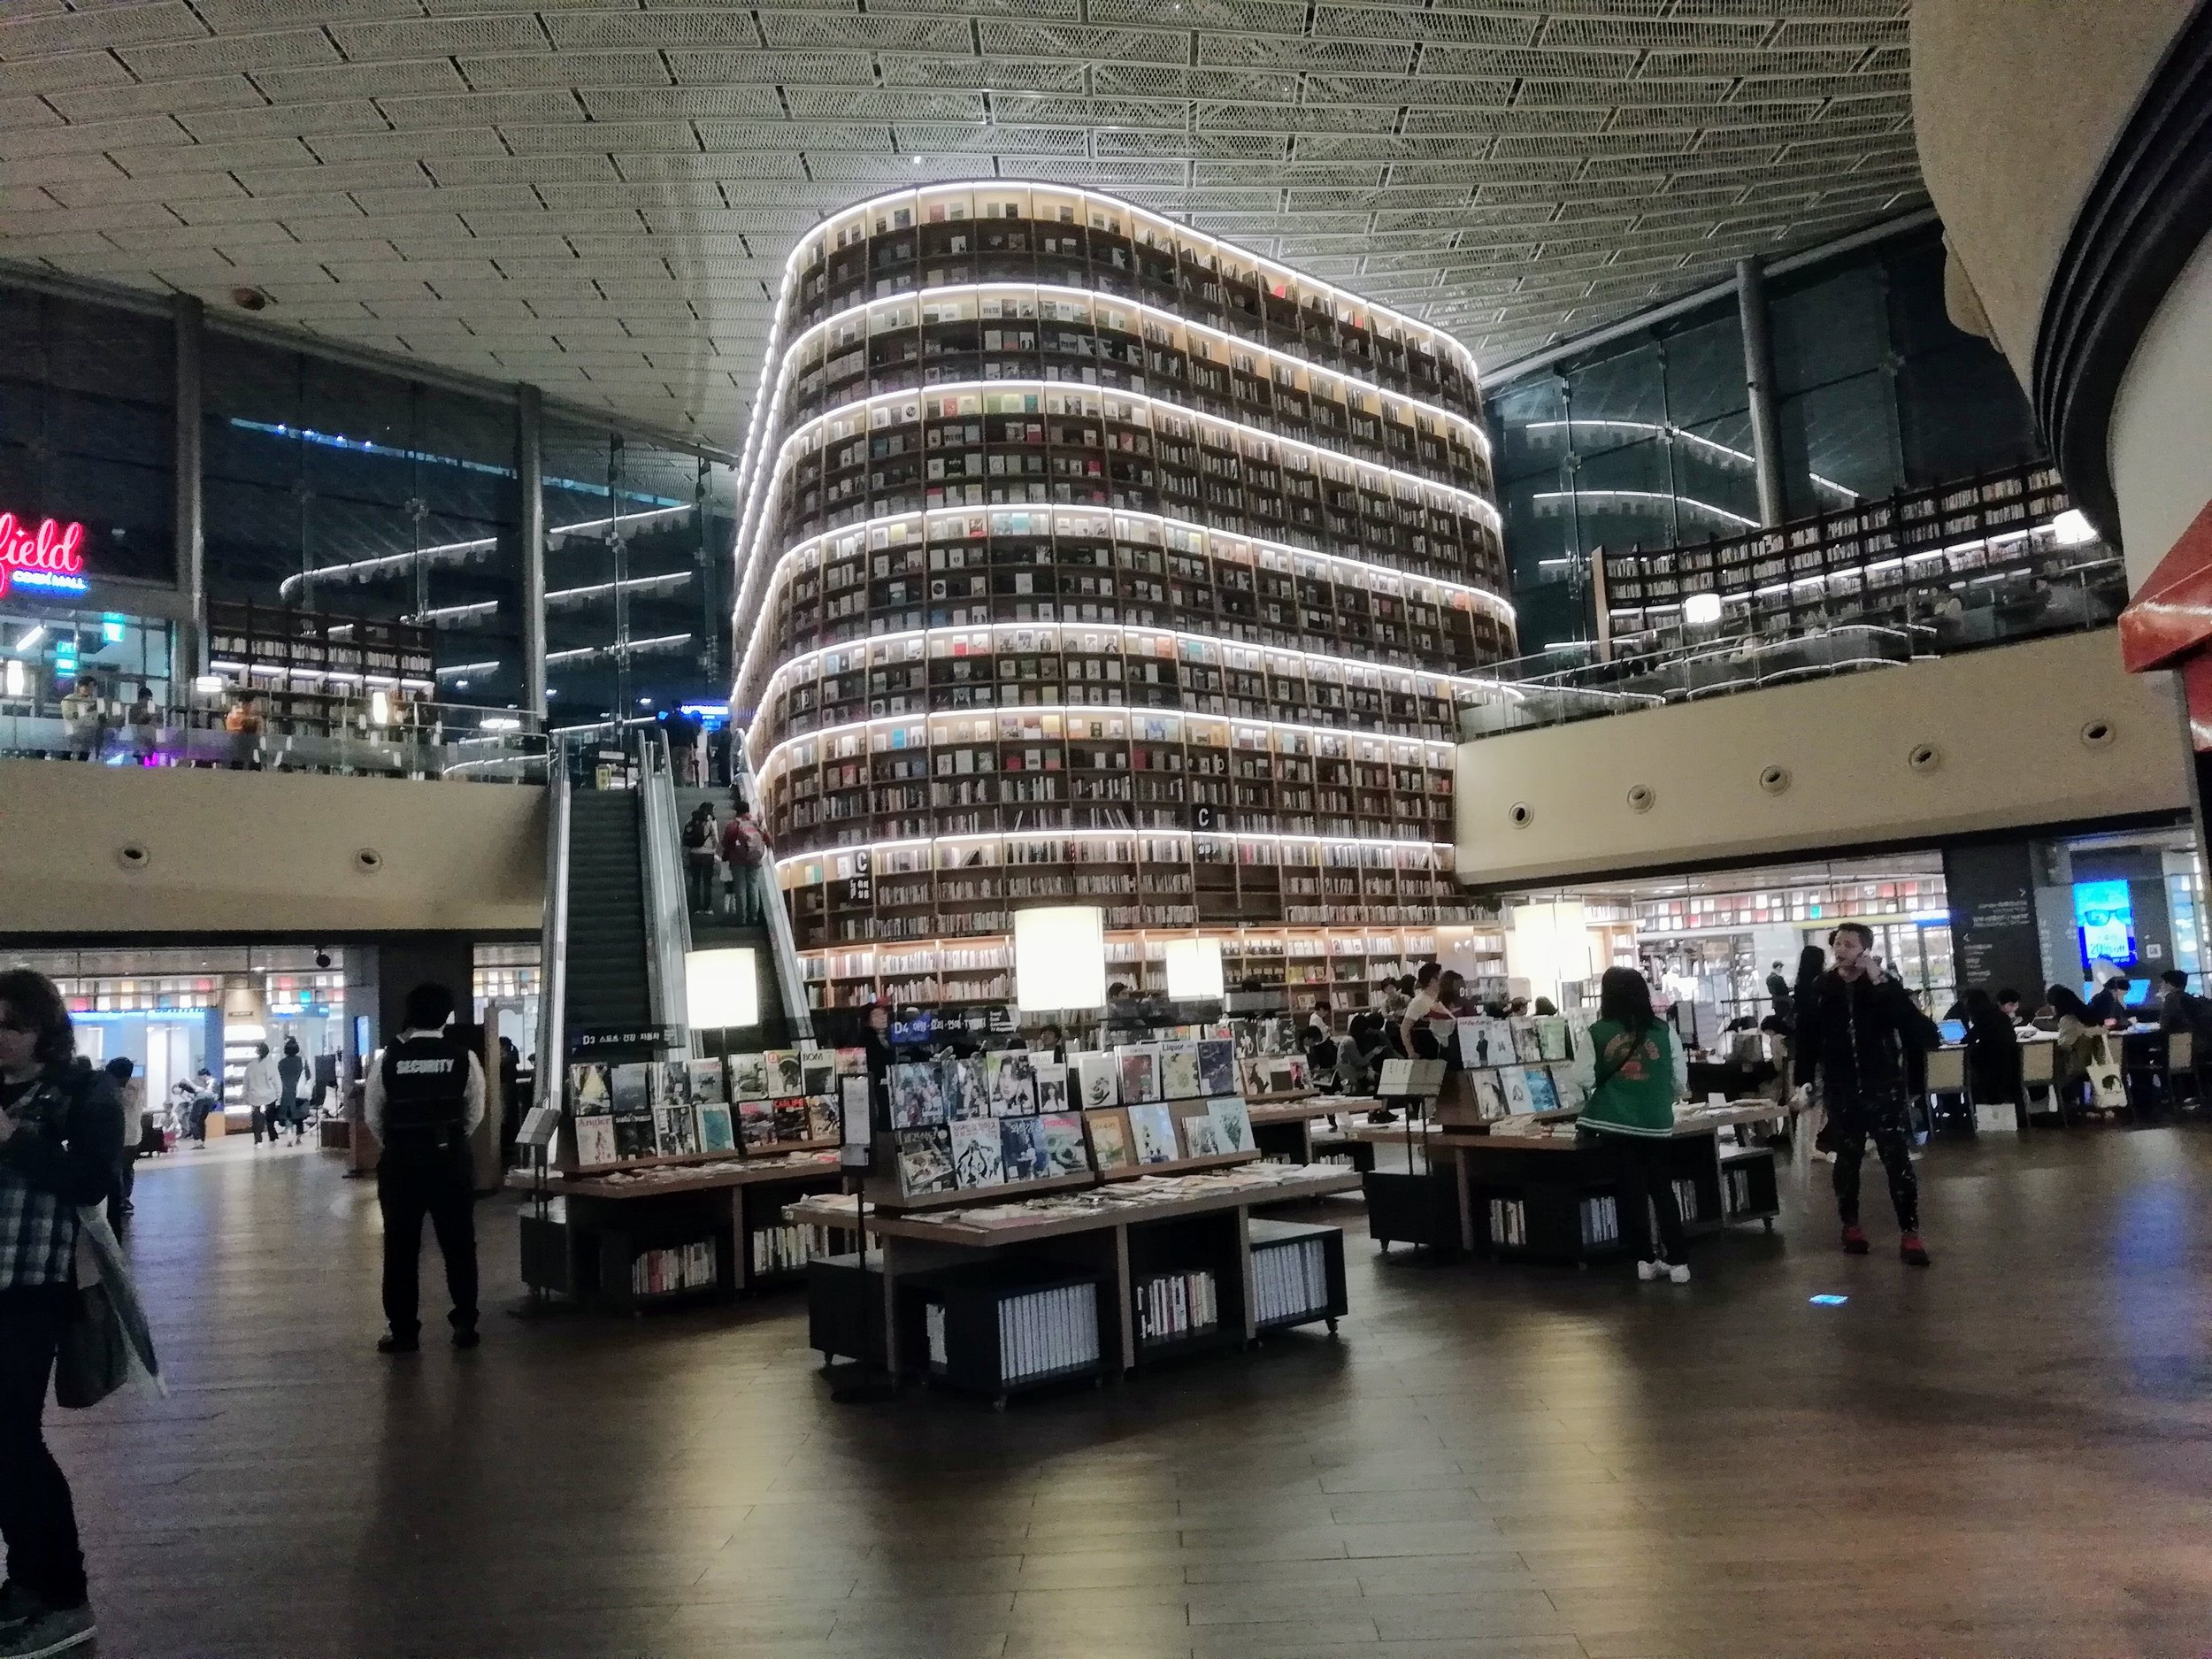 Library in a shopping centre